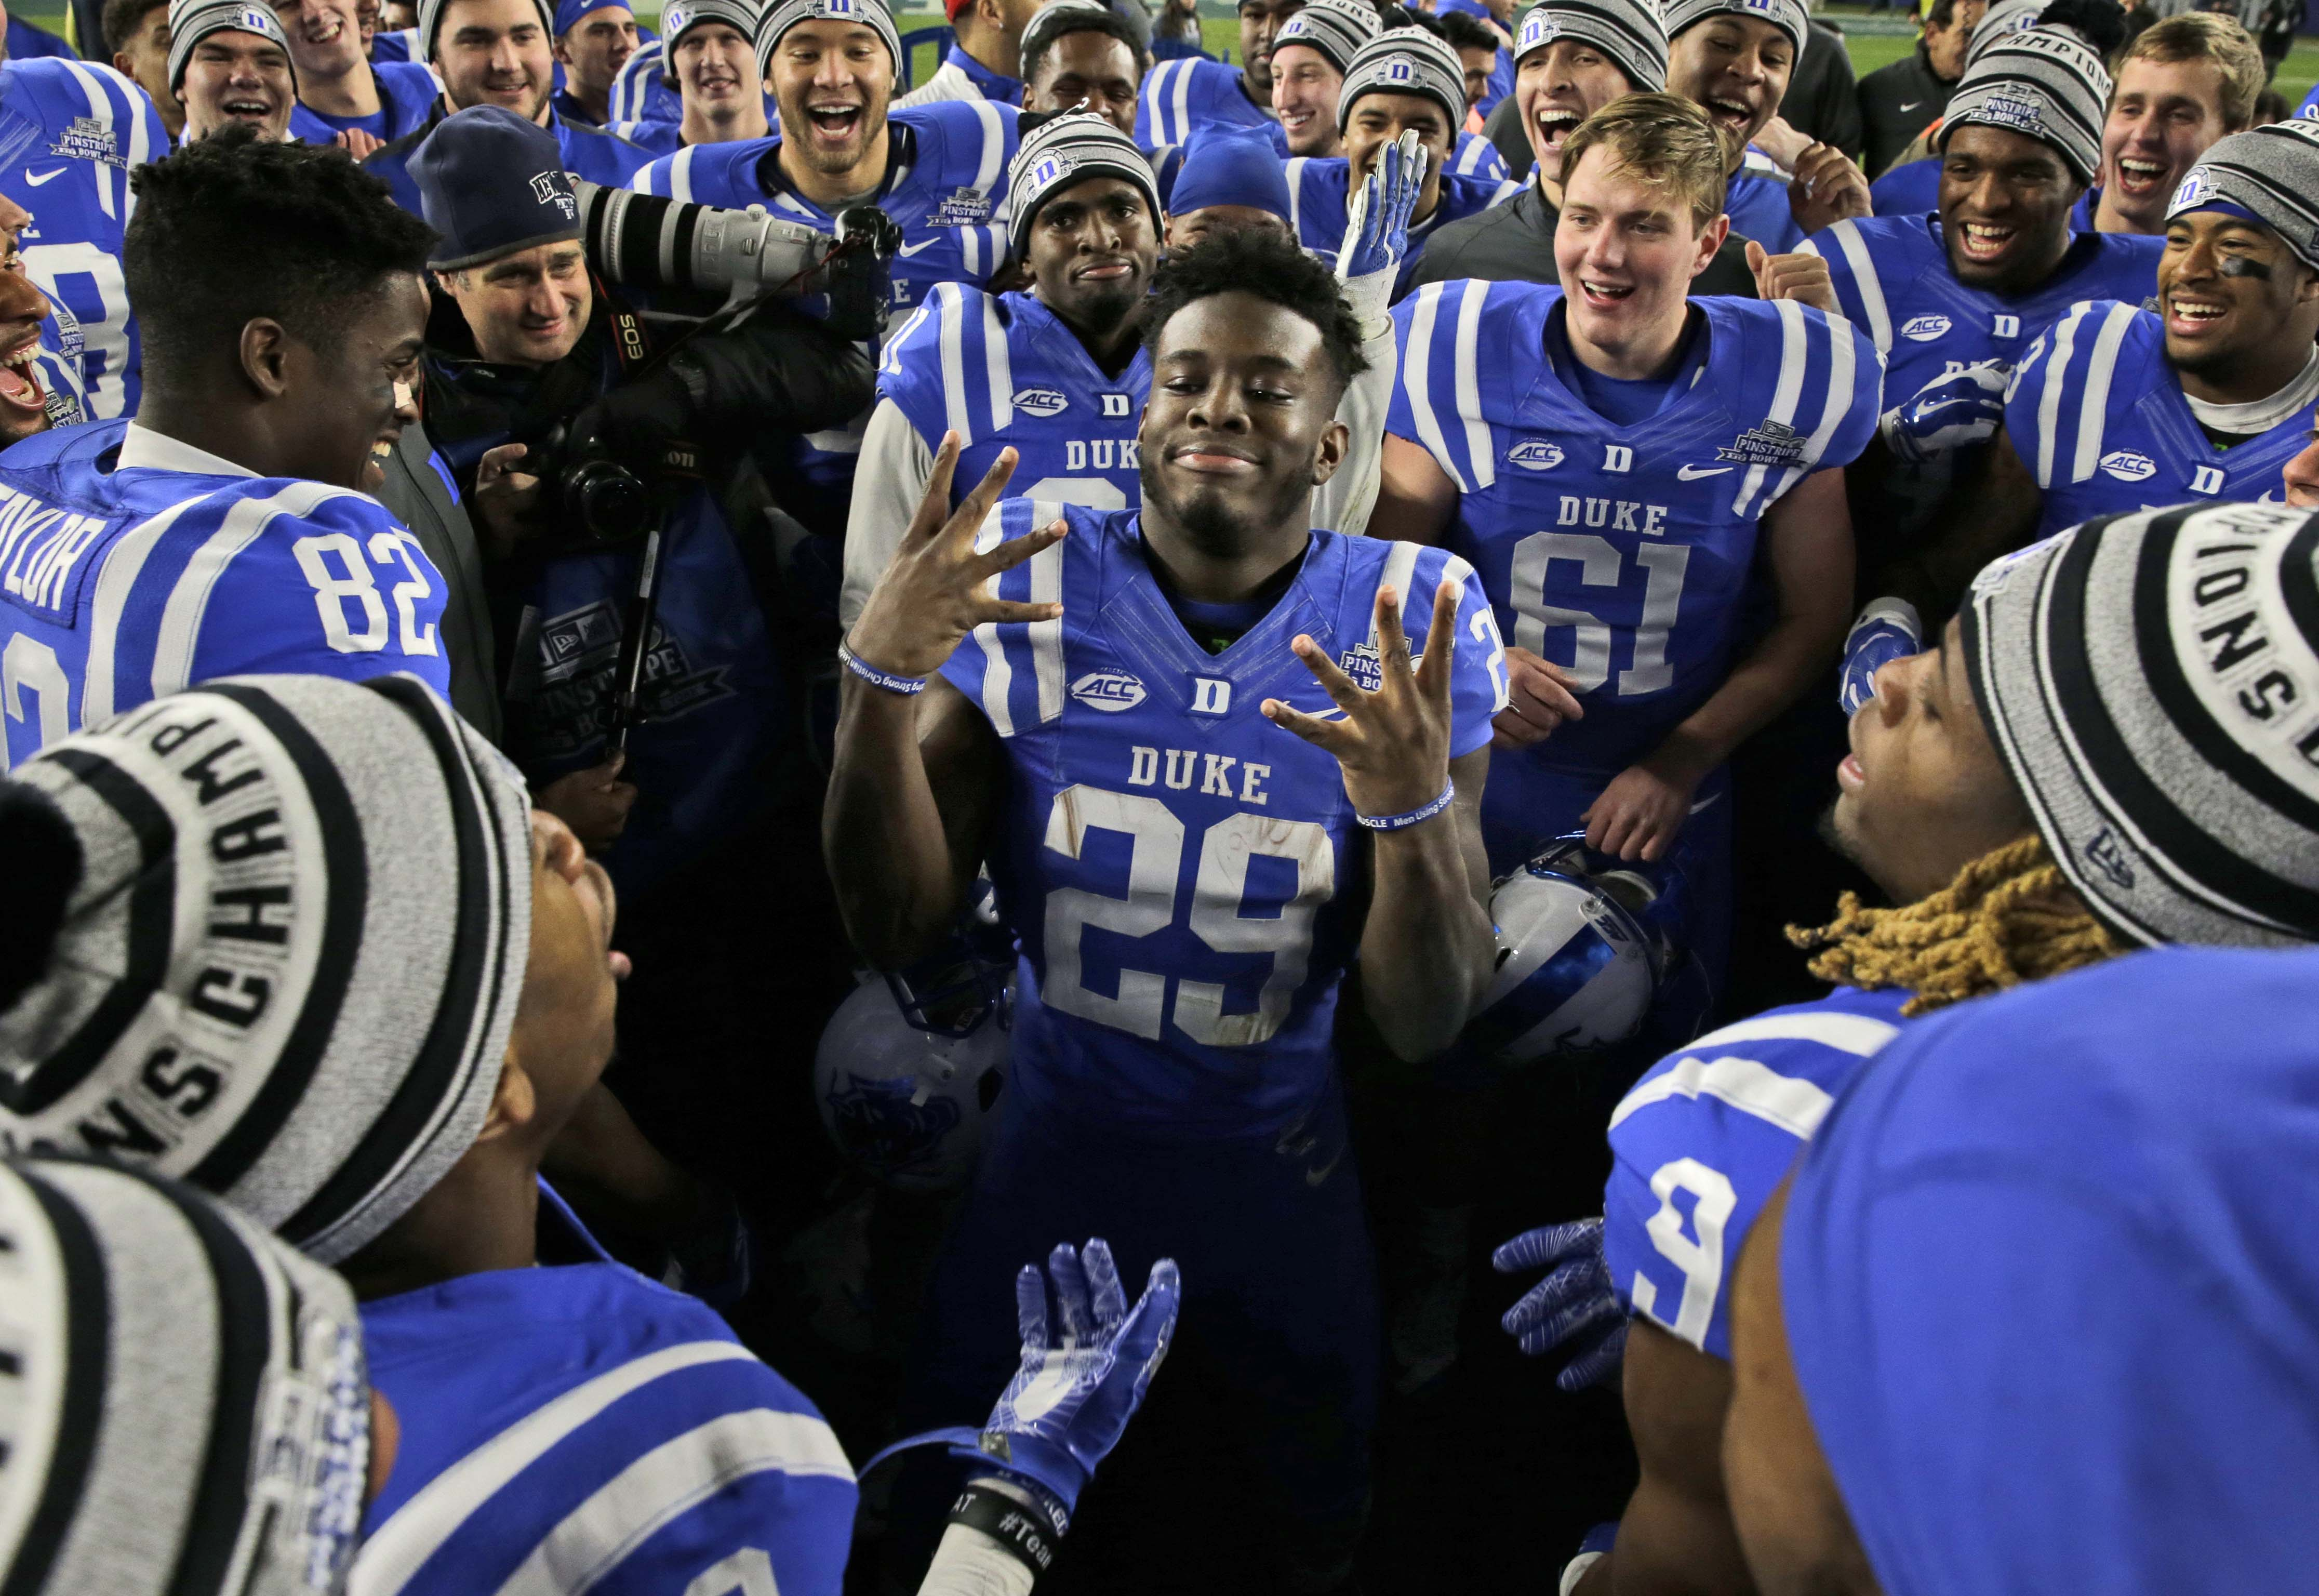 Duke's Shaun Wilson, center, celebrates with teammates after the Pinstripe Bowl NCAA college football game against Indiana at Yankee Stadium in New York, Saturday, Dec. 26, 2015. Duke defeated Indiana 44-41. (AP Photo/Seth Wenig)